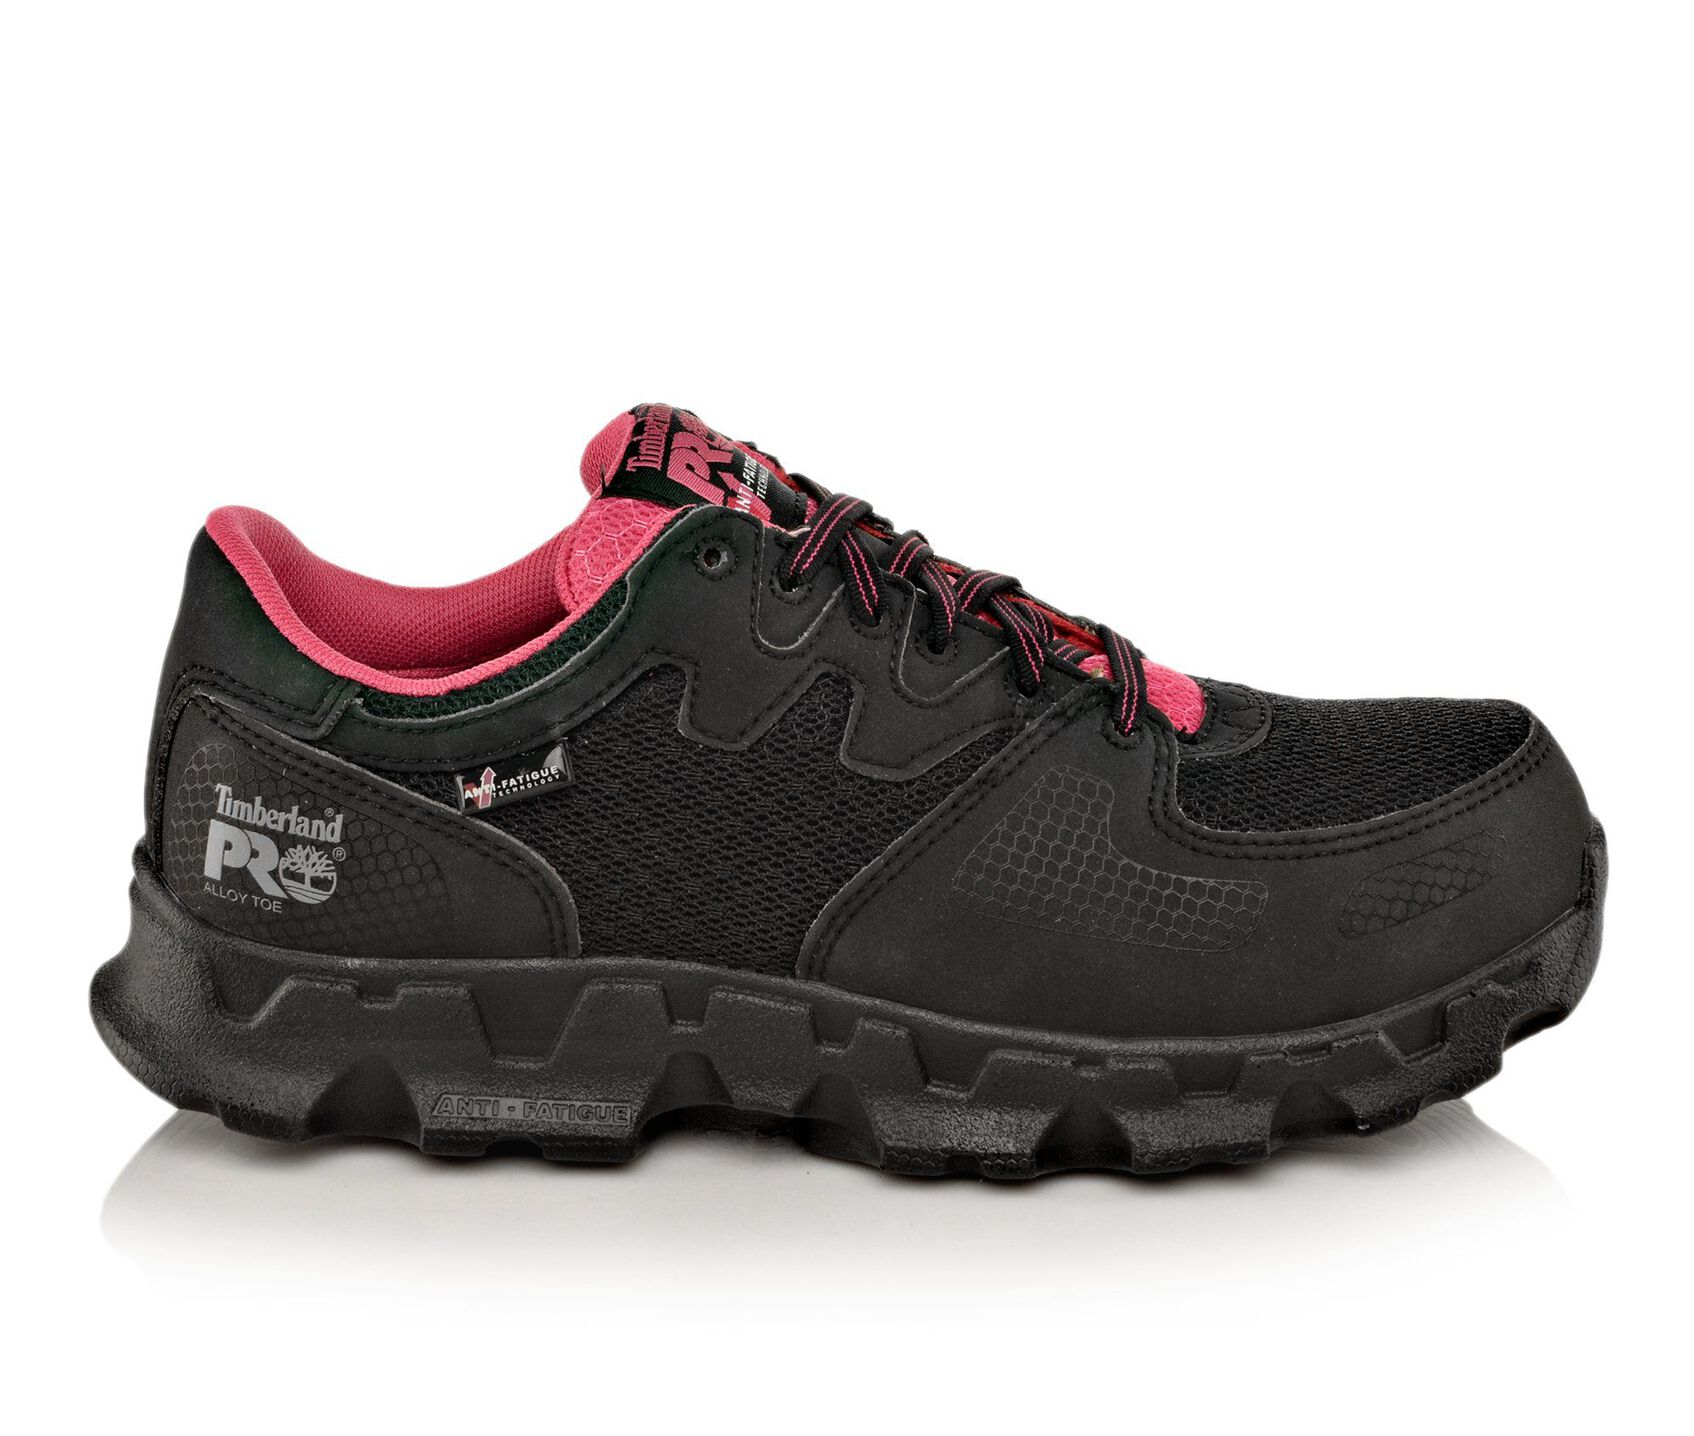 7caf9ba8 Women's Timberland Pro Powertrain Composite Toe Work Shoes | Shoe ...